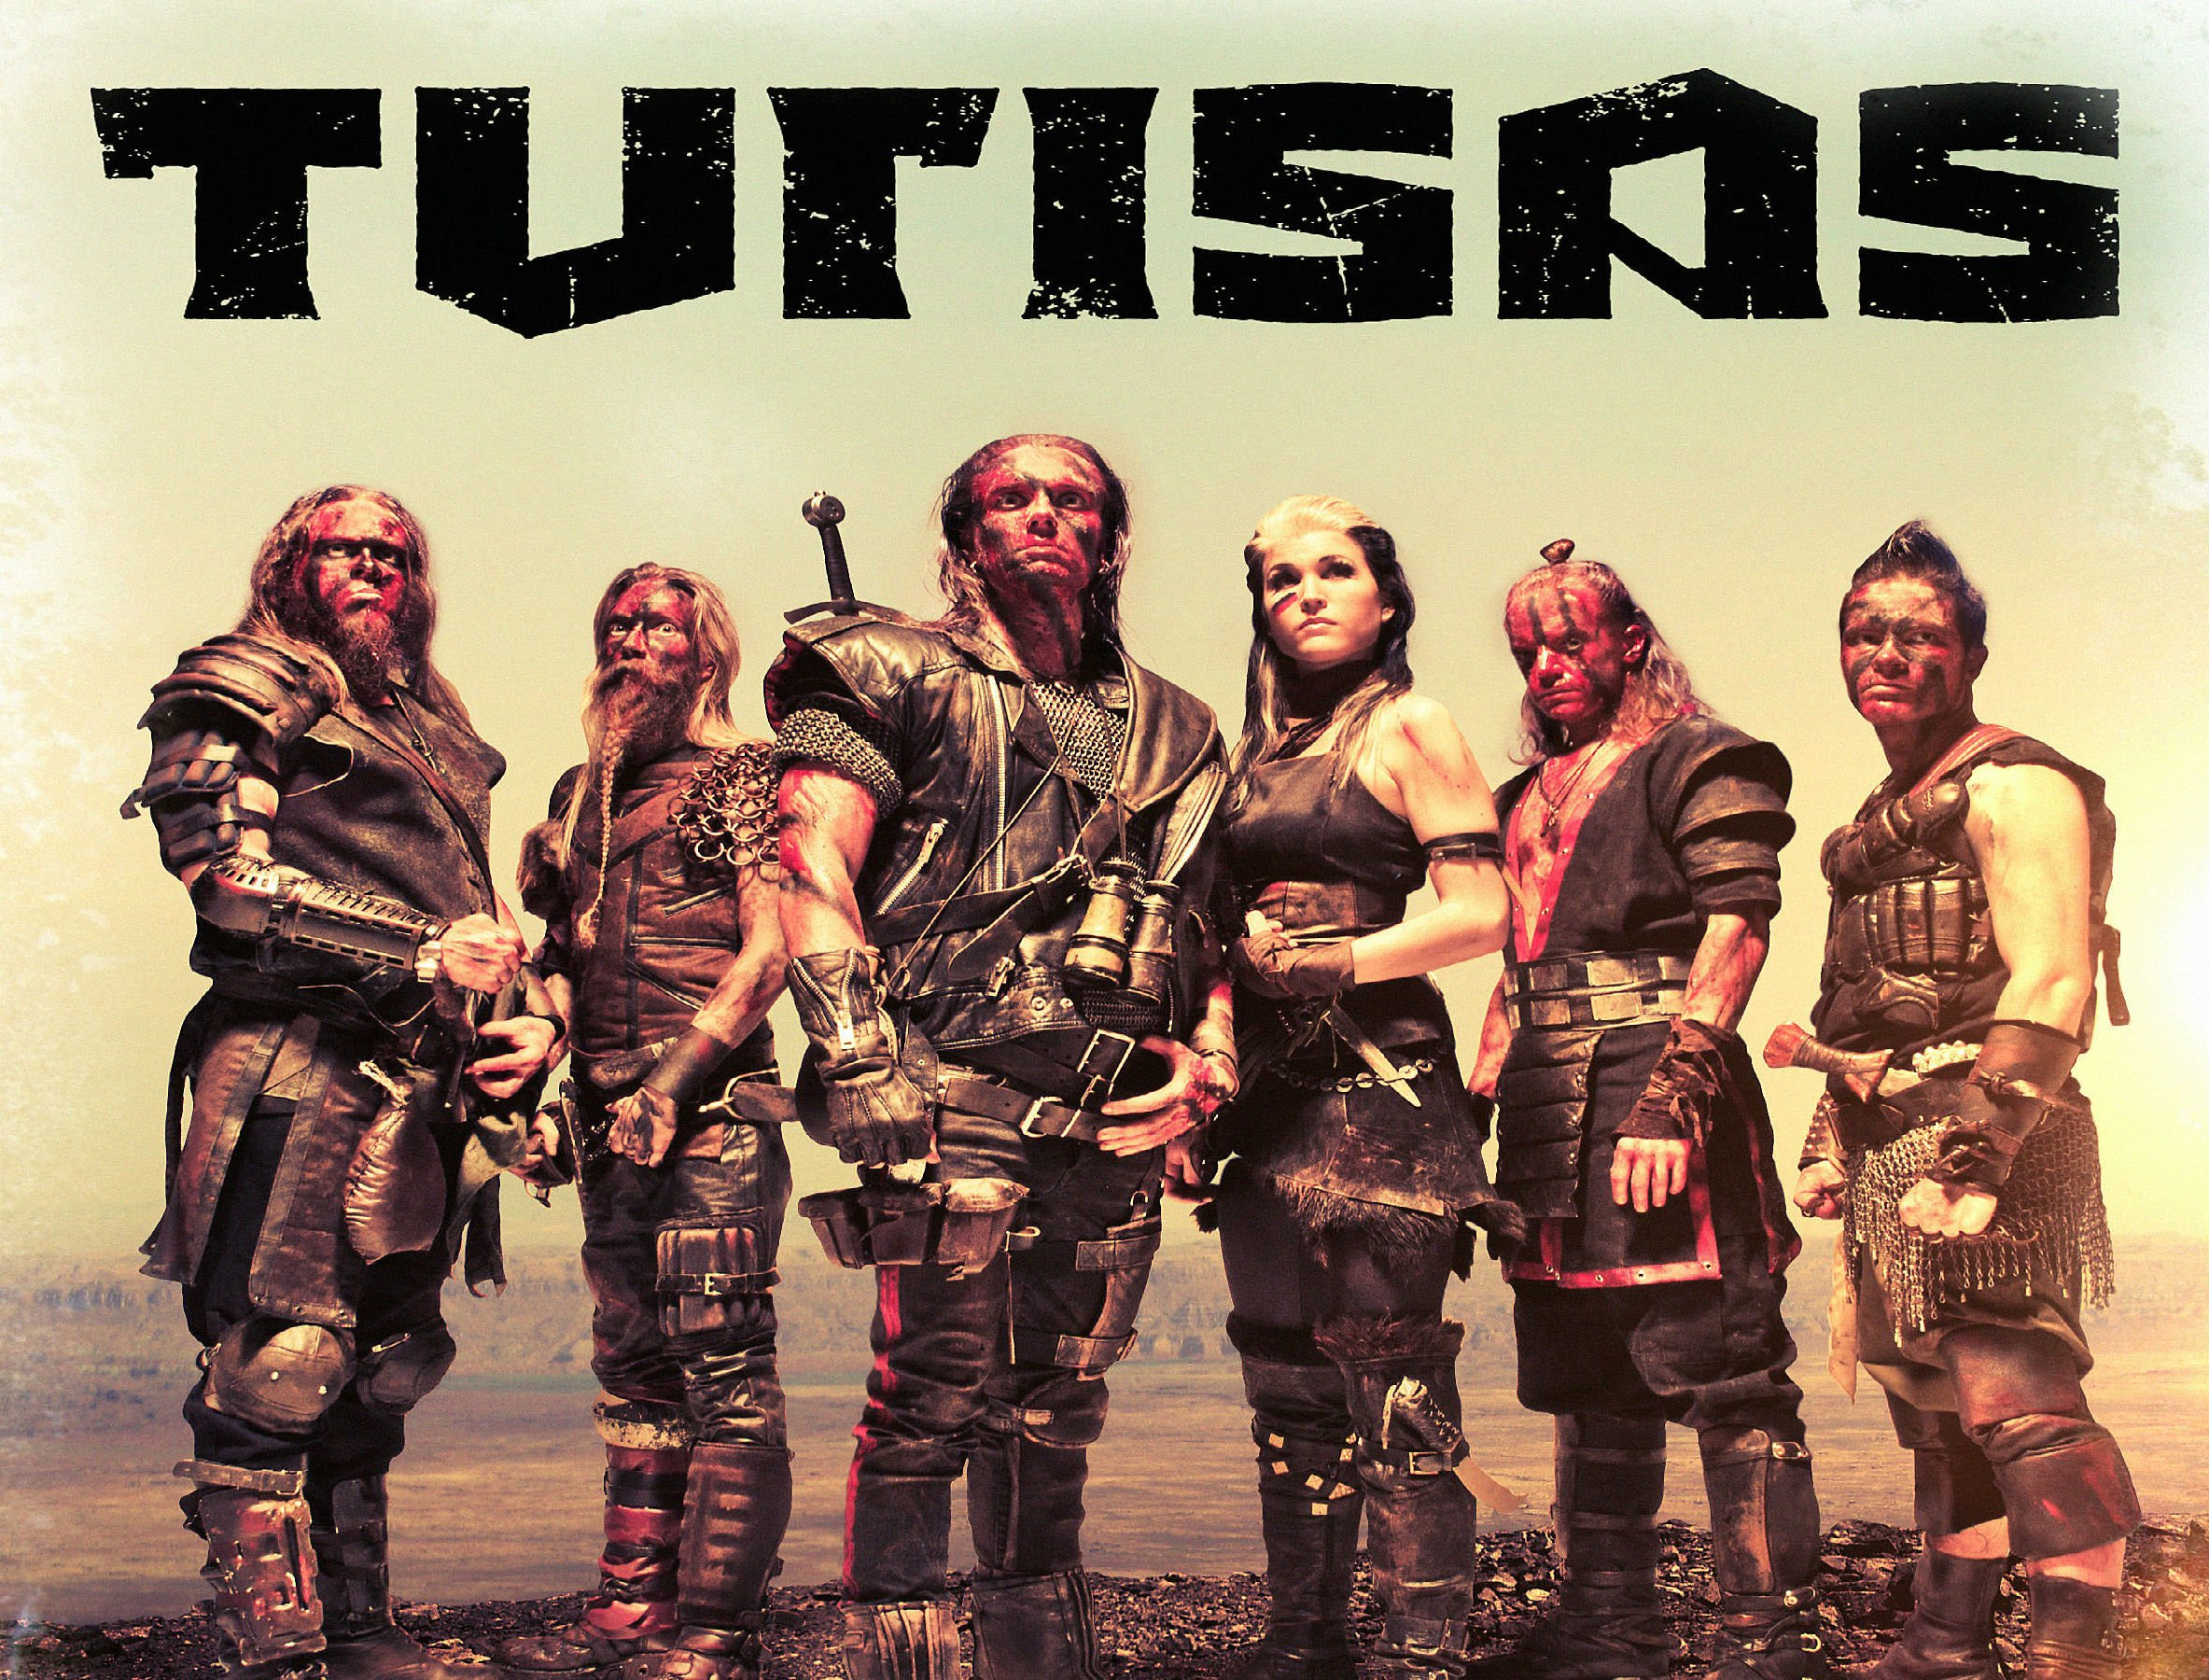 TURISAS folk metal heavy poster gd wallpaper 2367x1800 299858 2367x1800